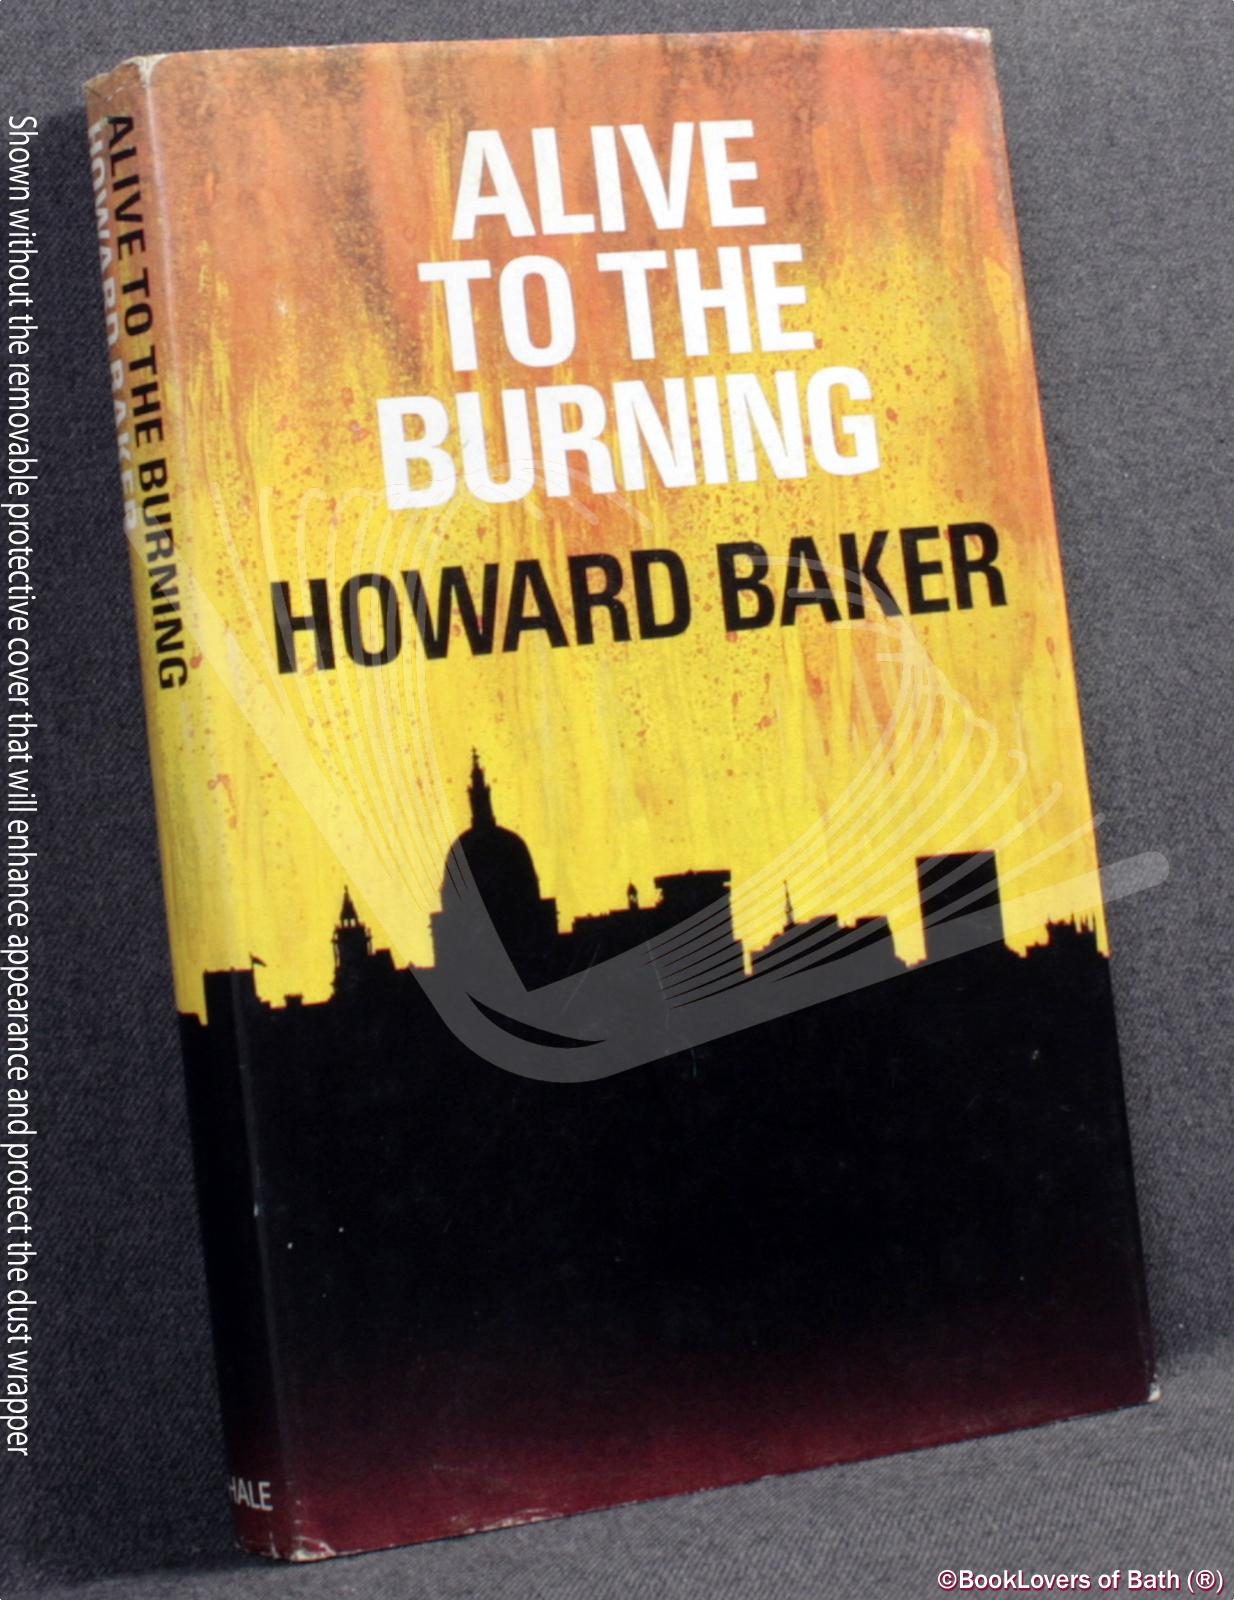 Alive to the Burning - Howard Baker